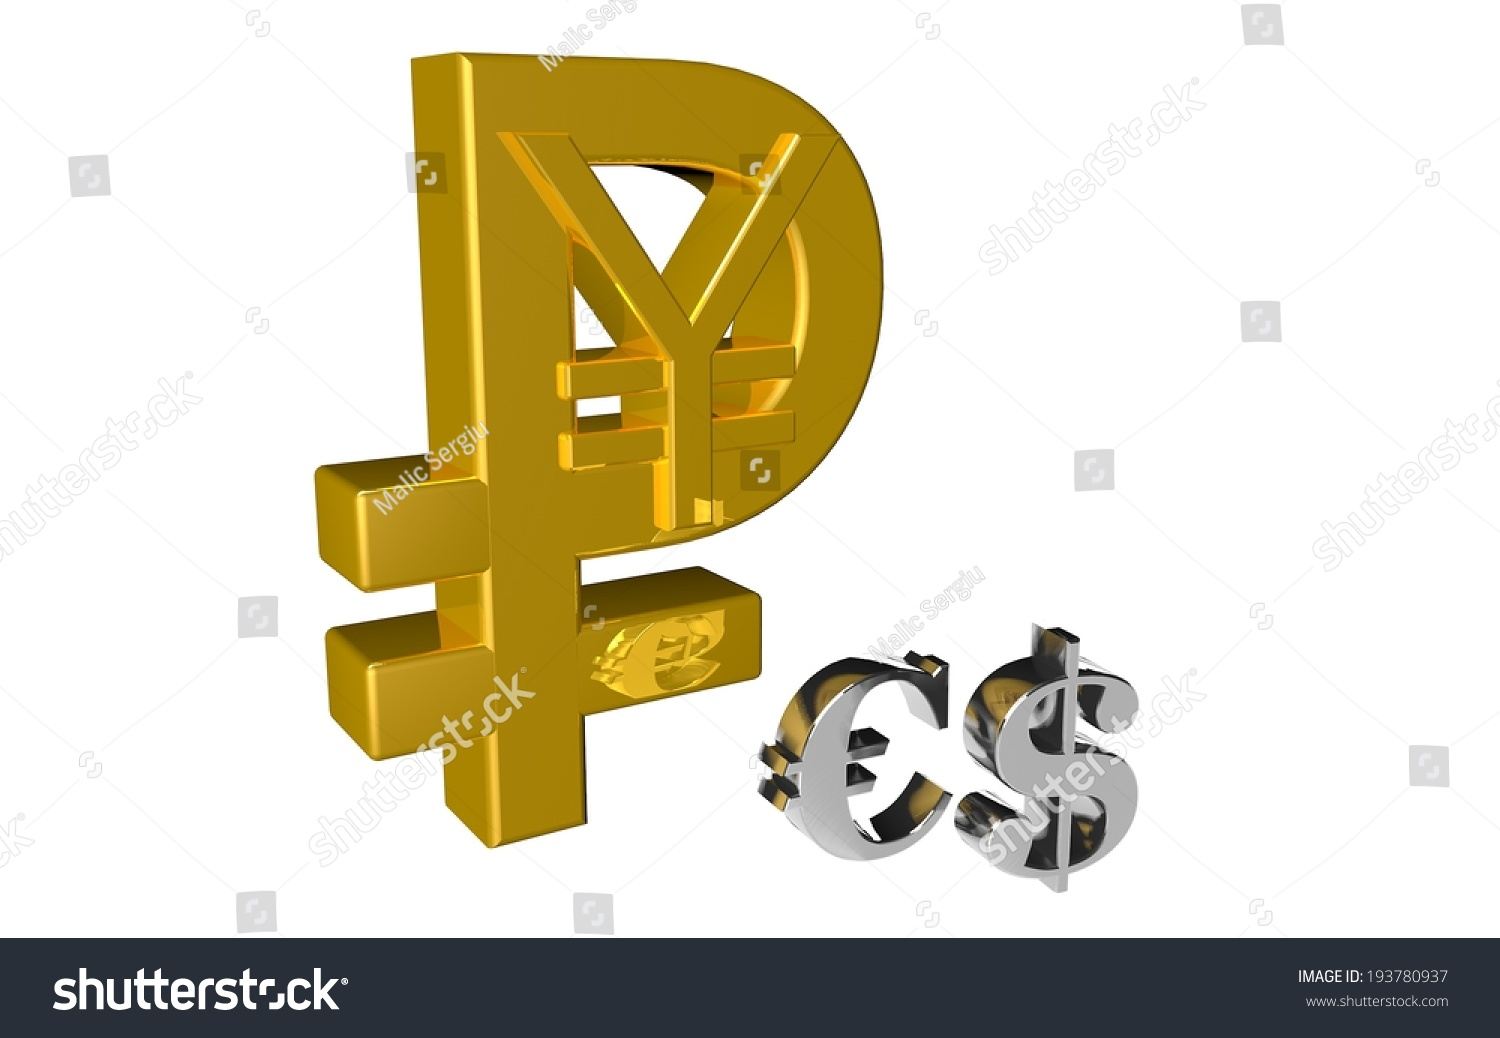 Russian Ruble Chinese Yuan Symbol Country Stock Illustration